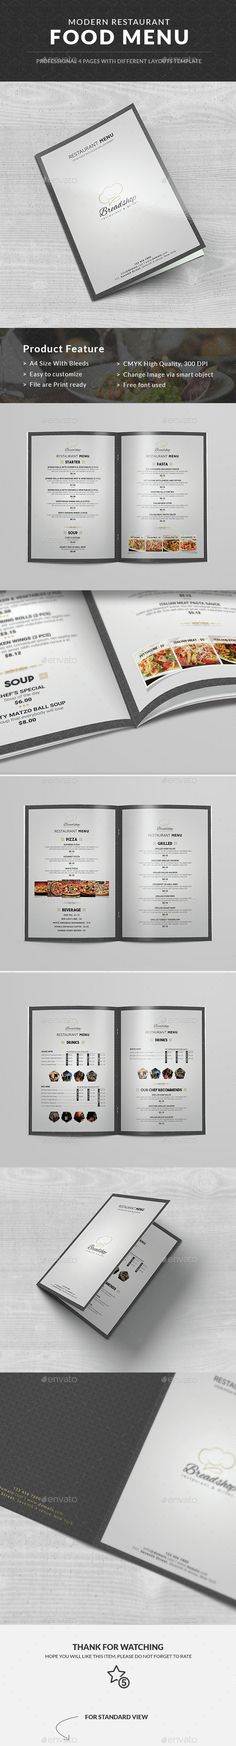 Restaurant Food Menu - Print Ready Food Menu Template, an intelligent choice for elegant, classy restaurant and catering businesses.   http://graphicriver.net/item/restaurant-food-menu/14603475?ref=themedevisers